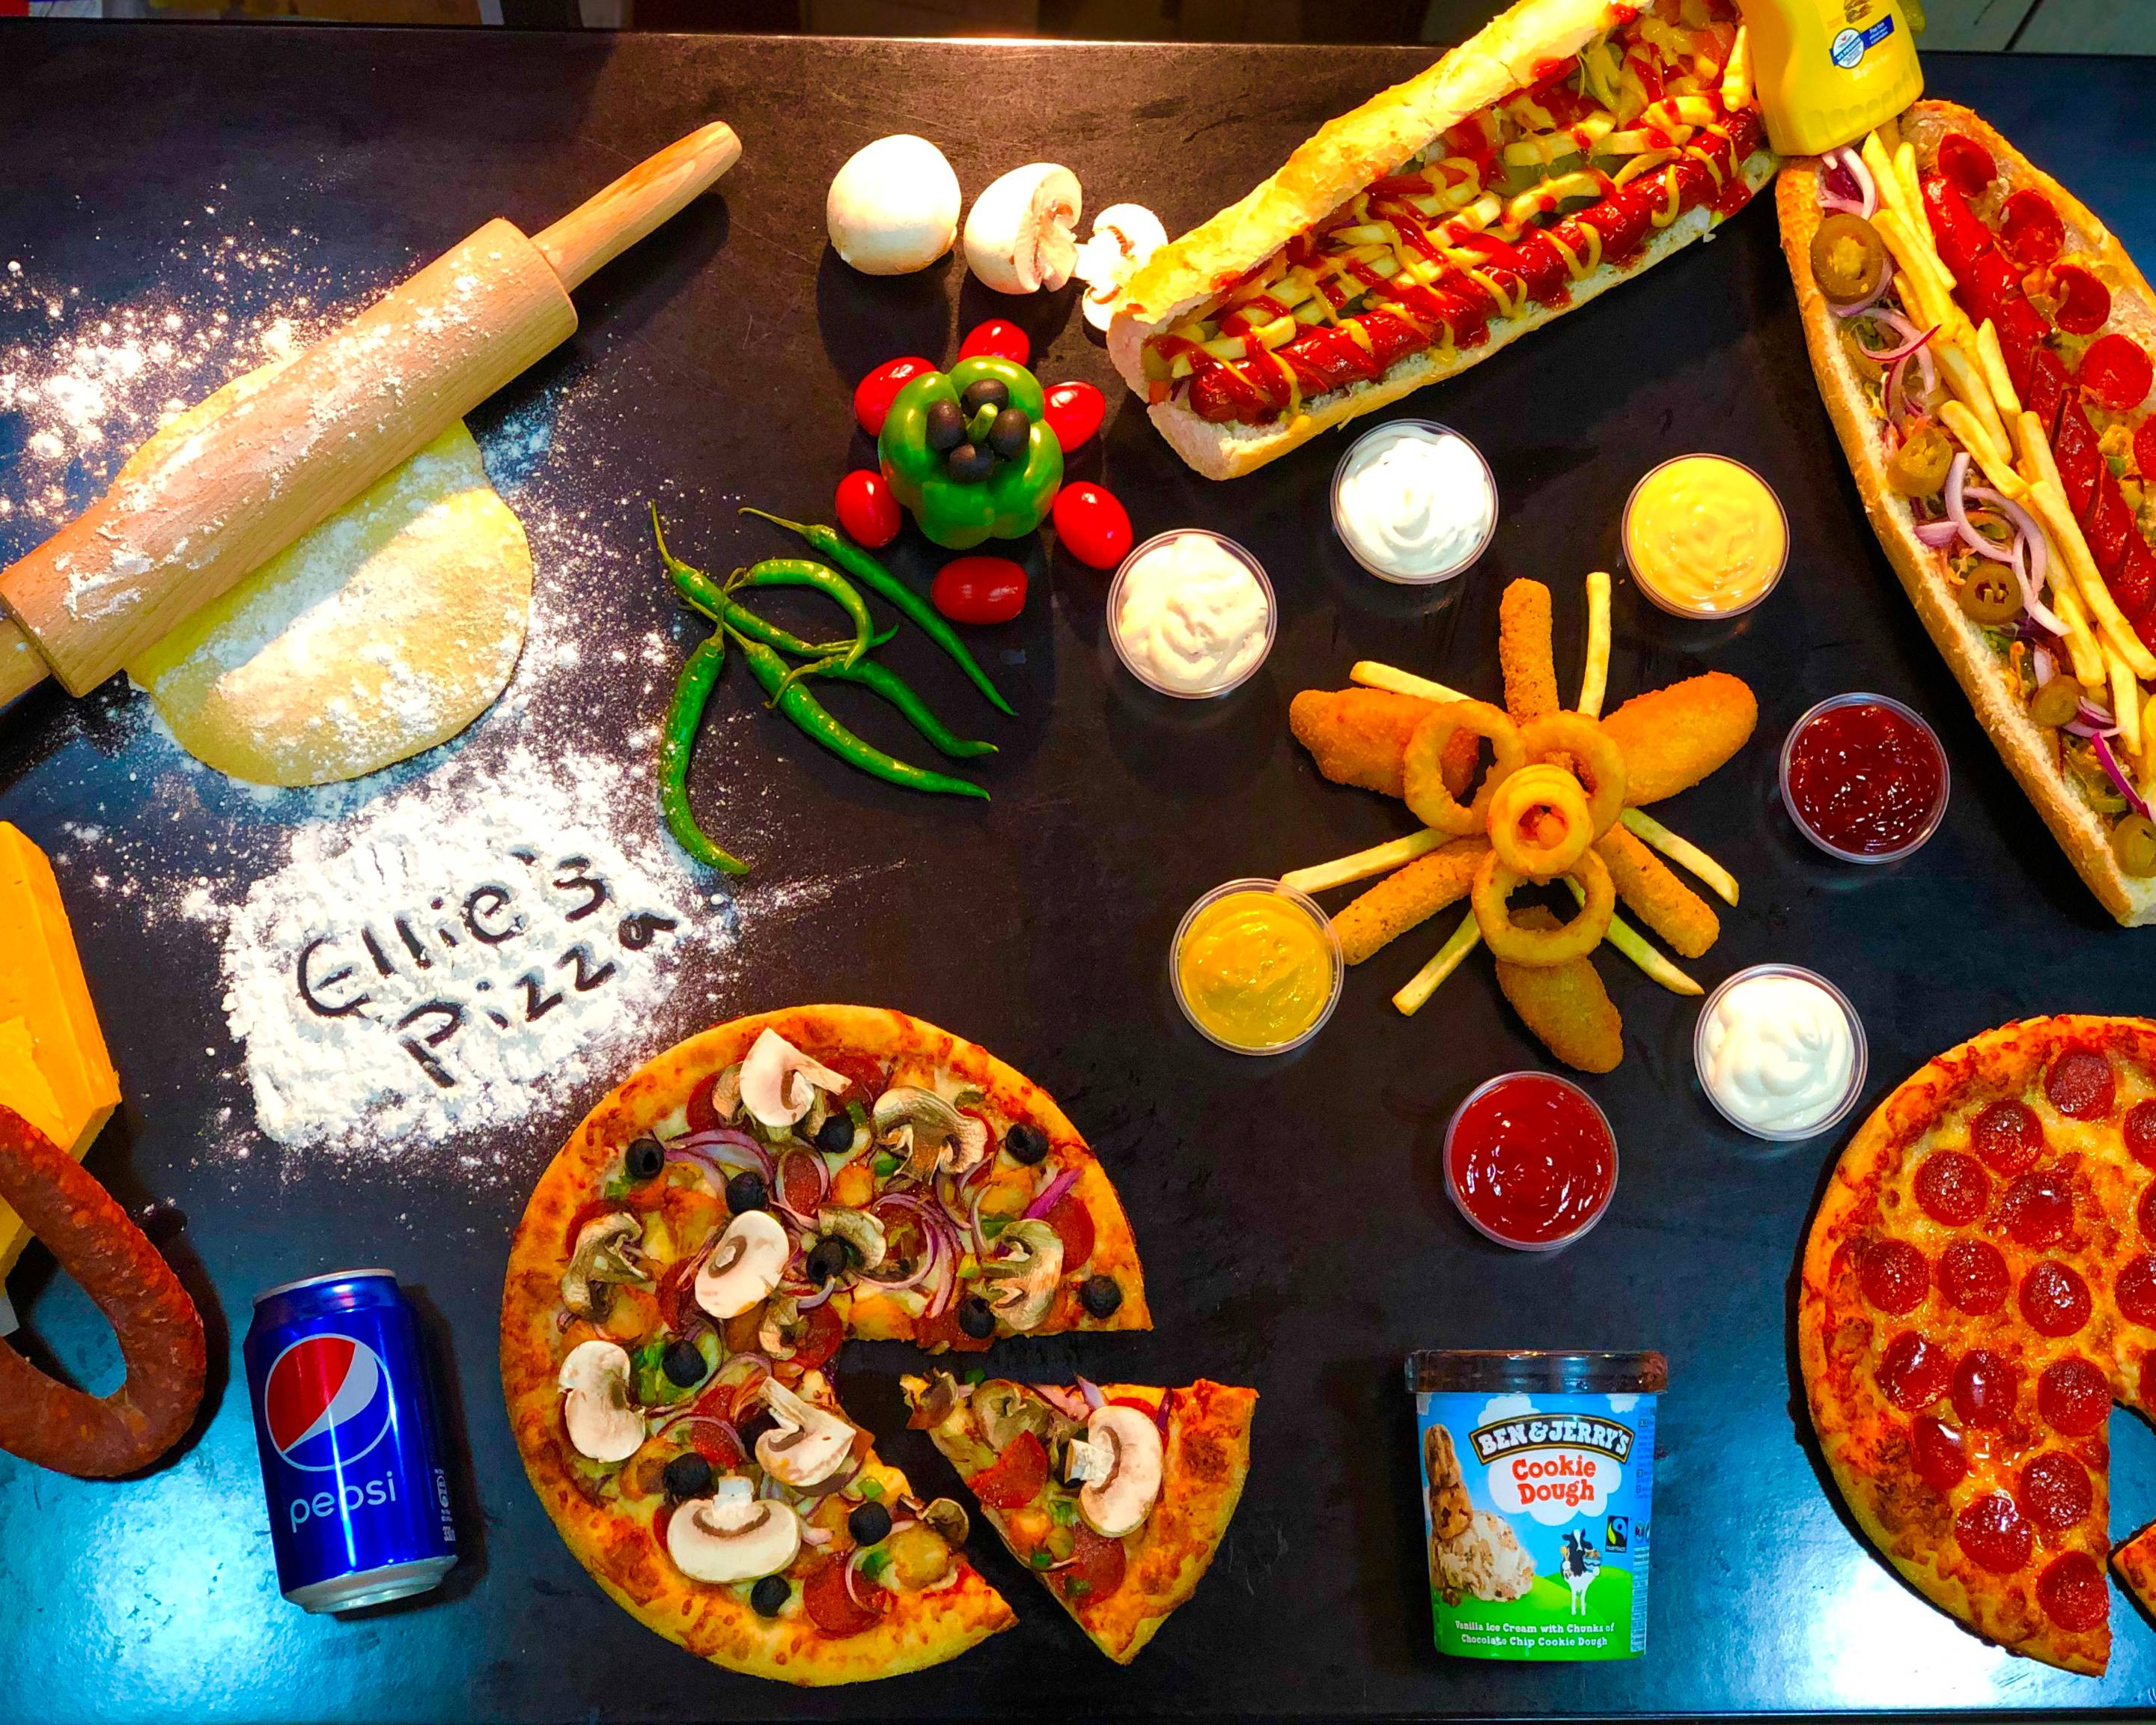 Ellies Pizza Delivery Manchester Uber Eats